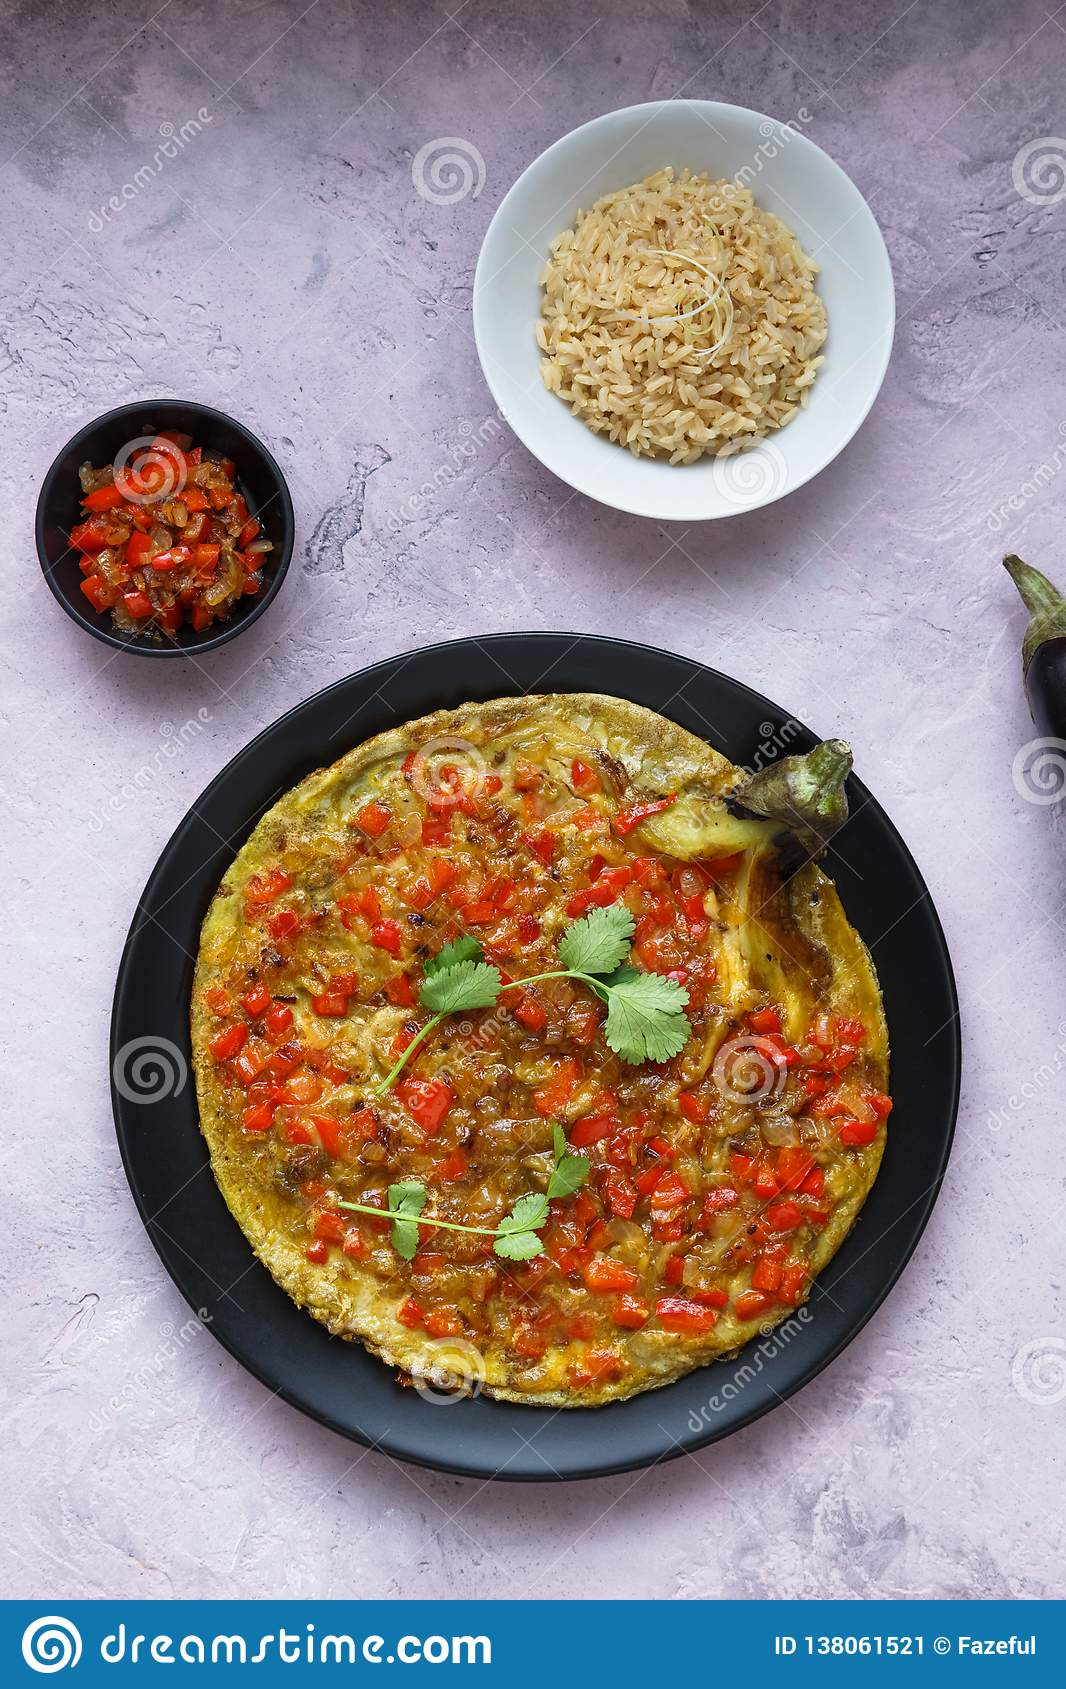 Tortang Talong With Giniling Eggplant Omelet With Ground Pork Filipino Food Stock Image Image Of Food Moussaka 138061521